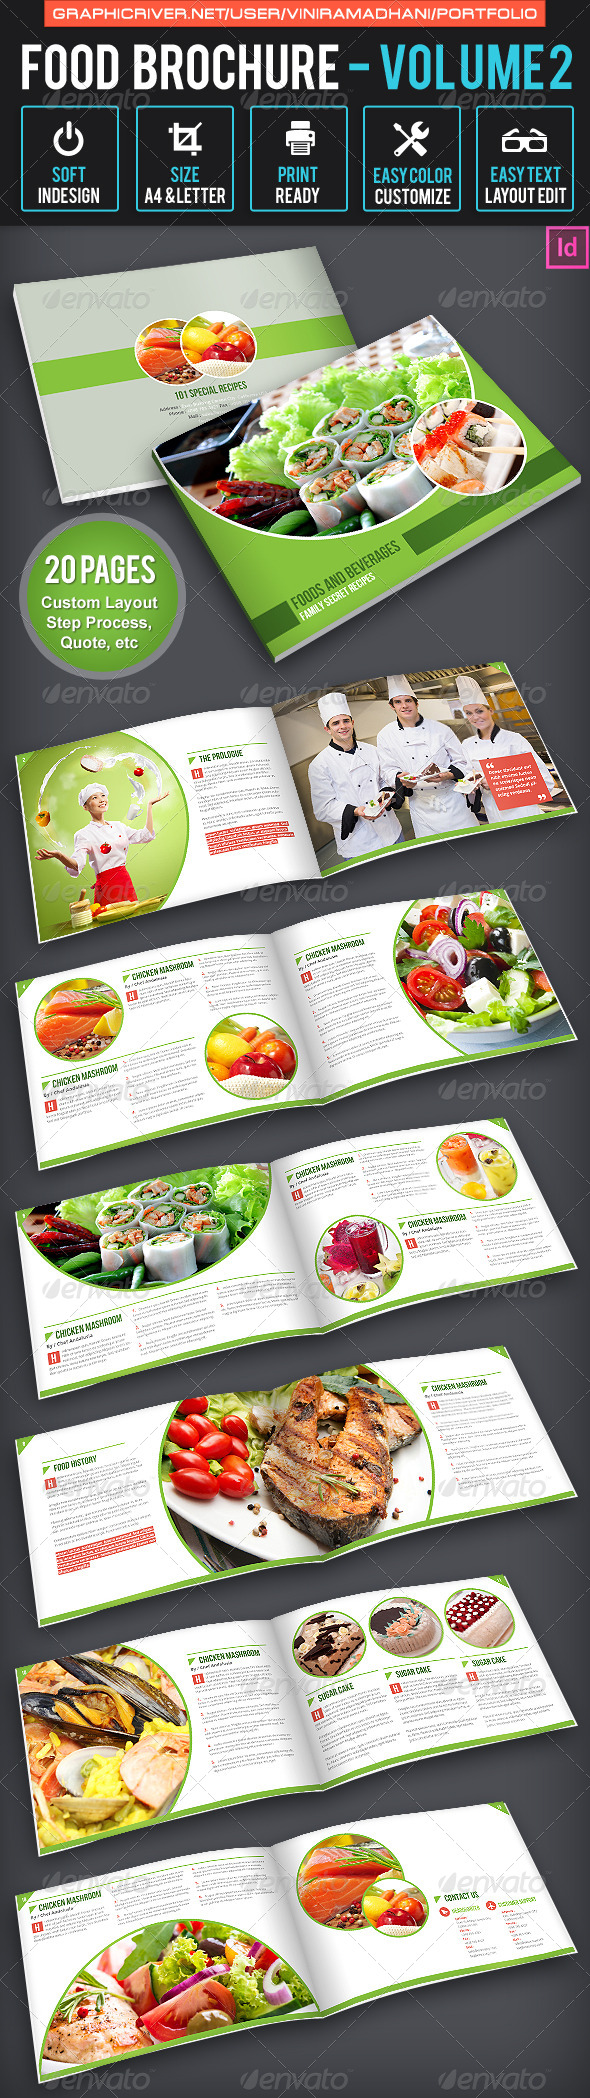 Food Brochure | Volume 2 - Portfolio Brochures